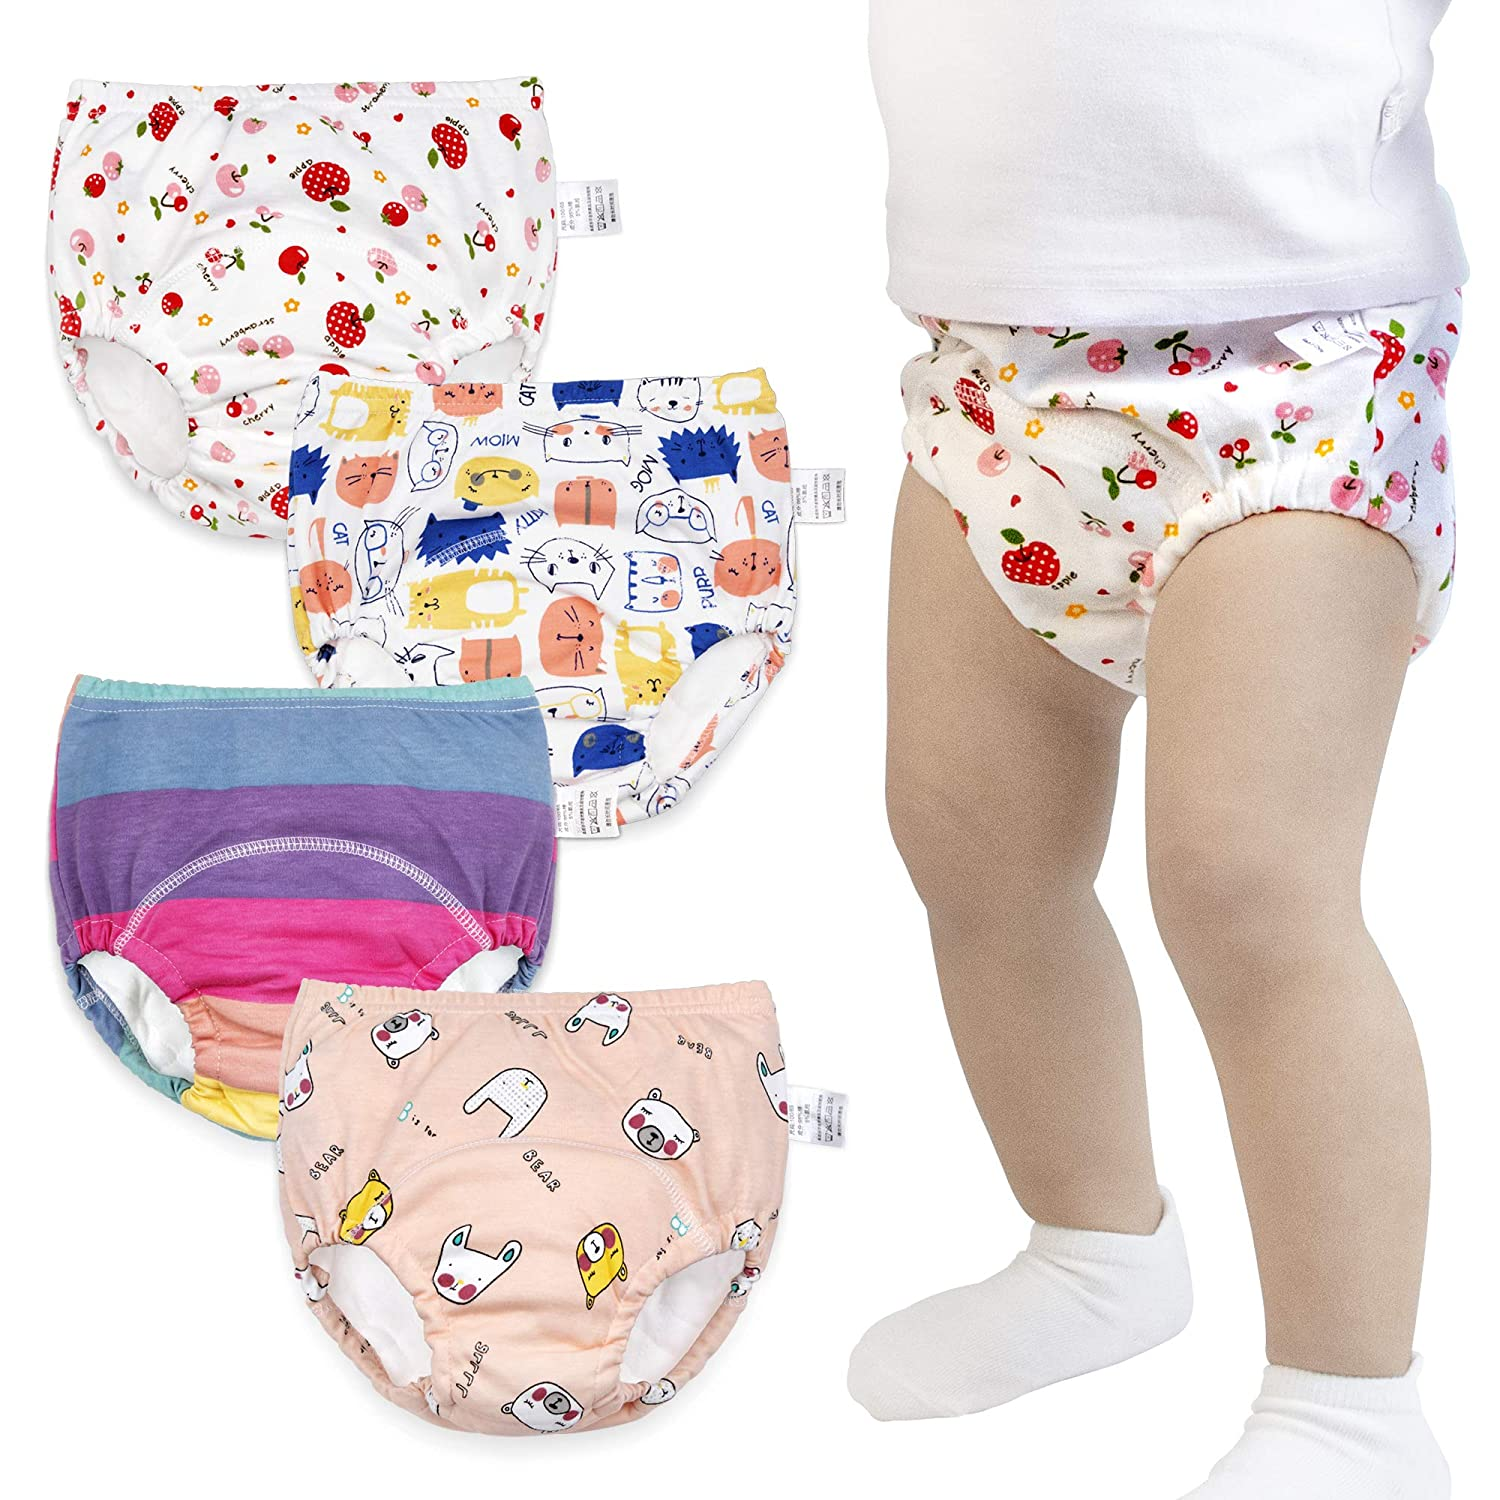 Max Shape Toddler Training Underwear for Girls 12M,2T,3T,4T,Baby Girls Potty Training Pants Cotton 4 Pack